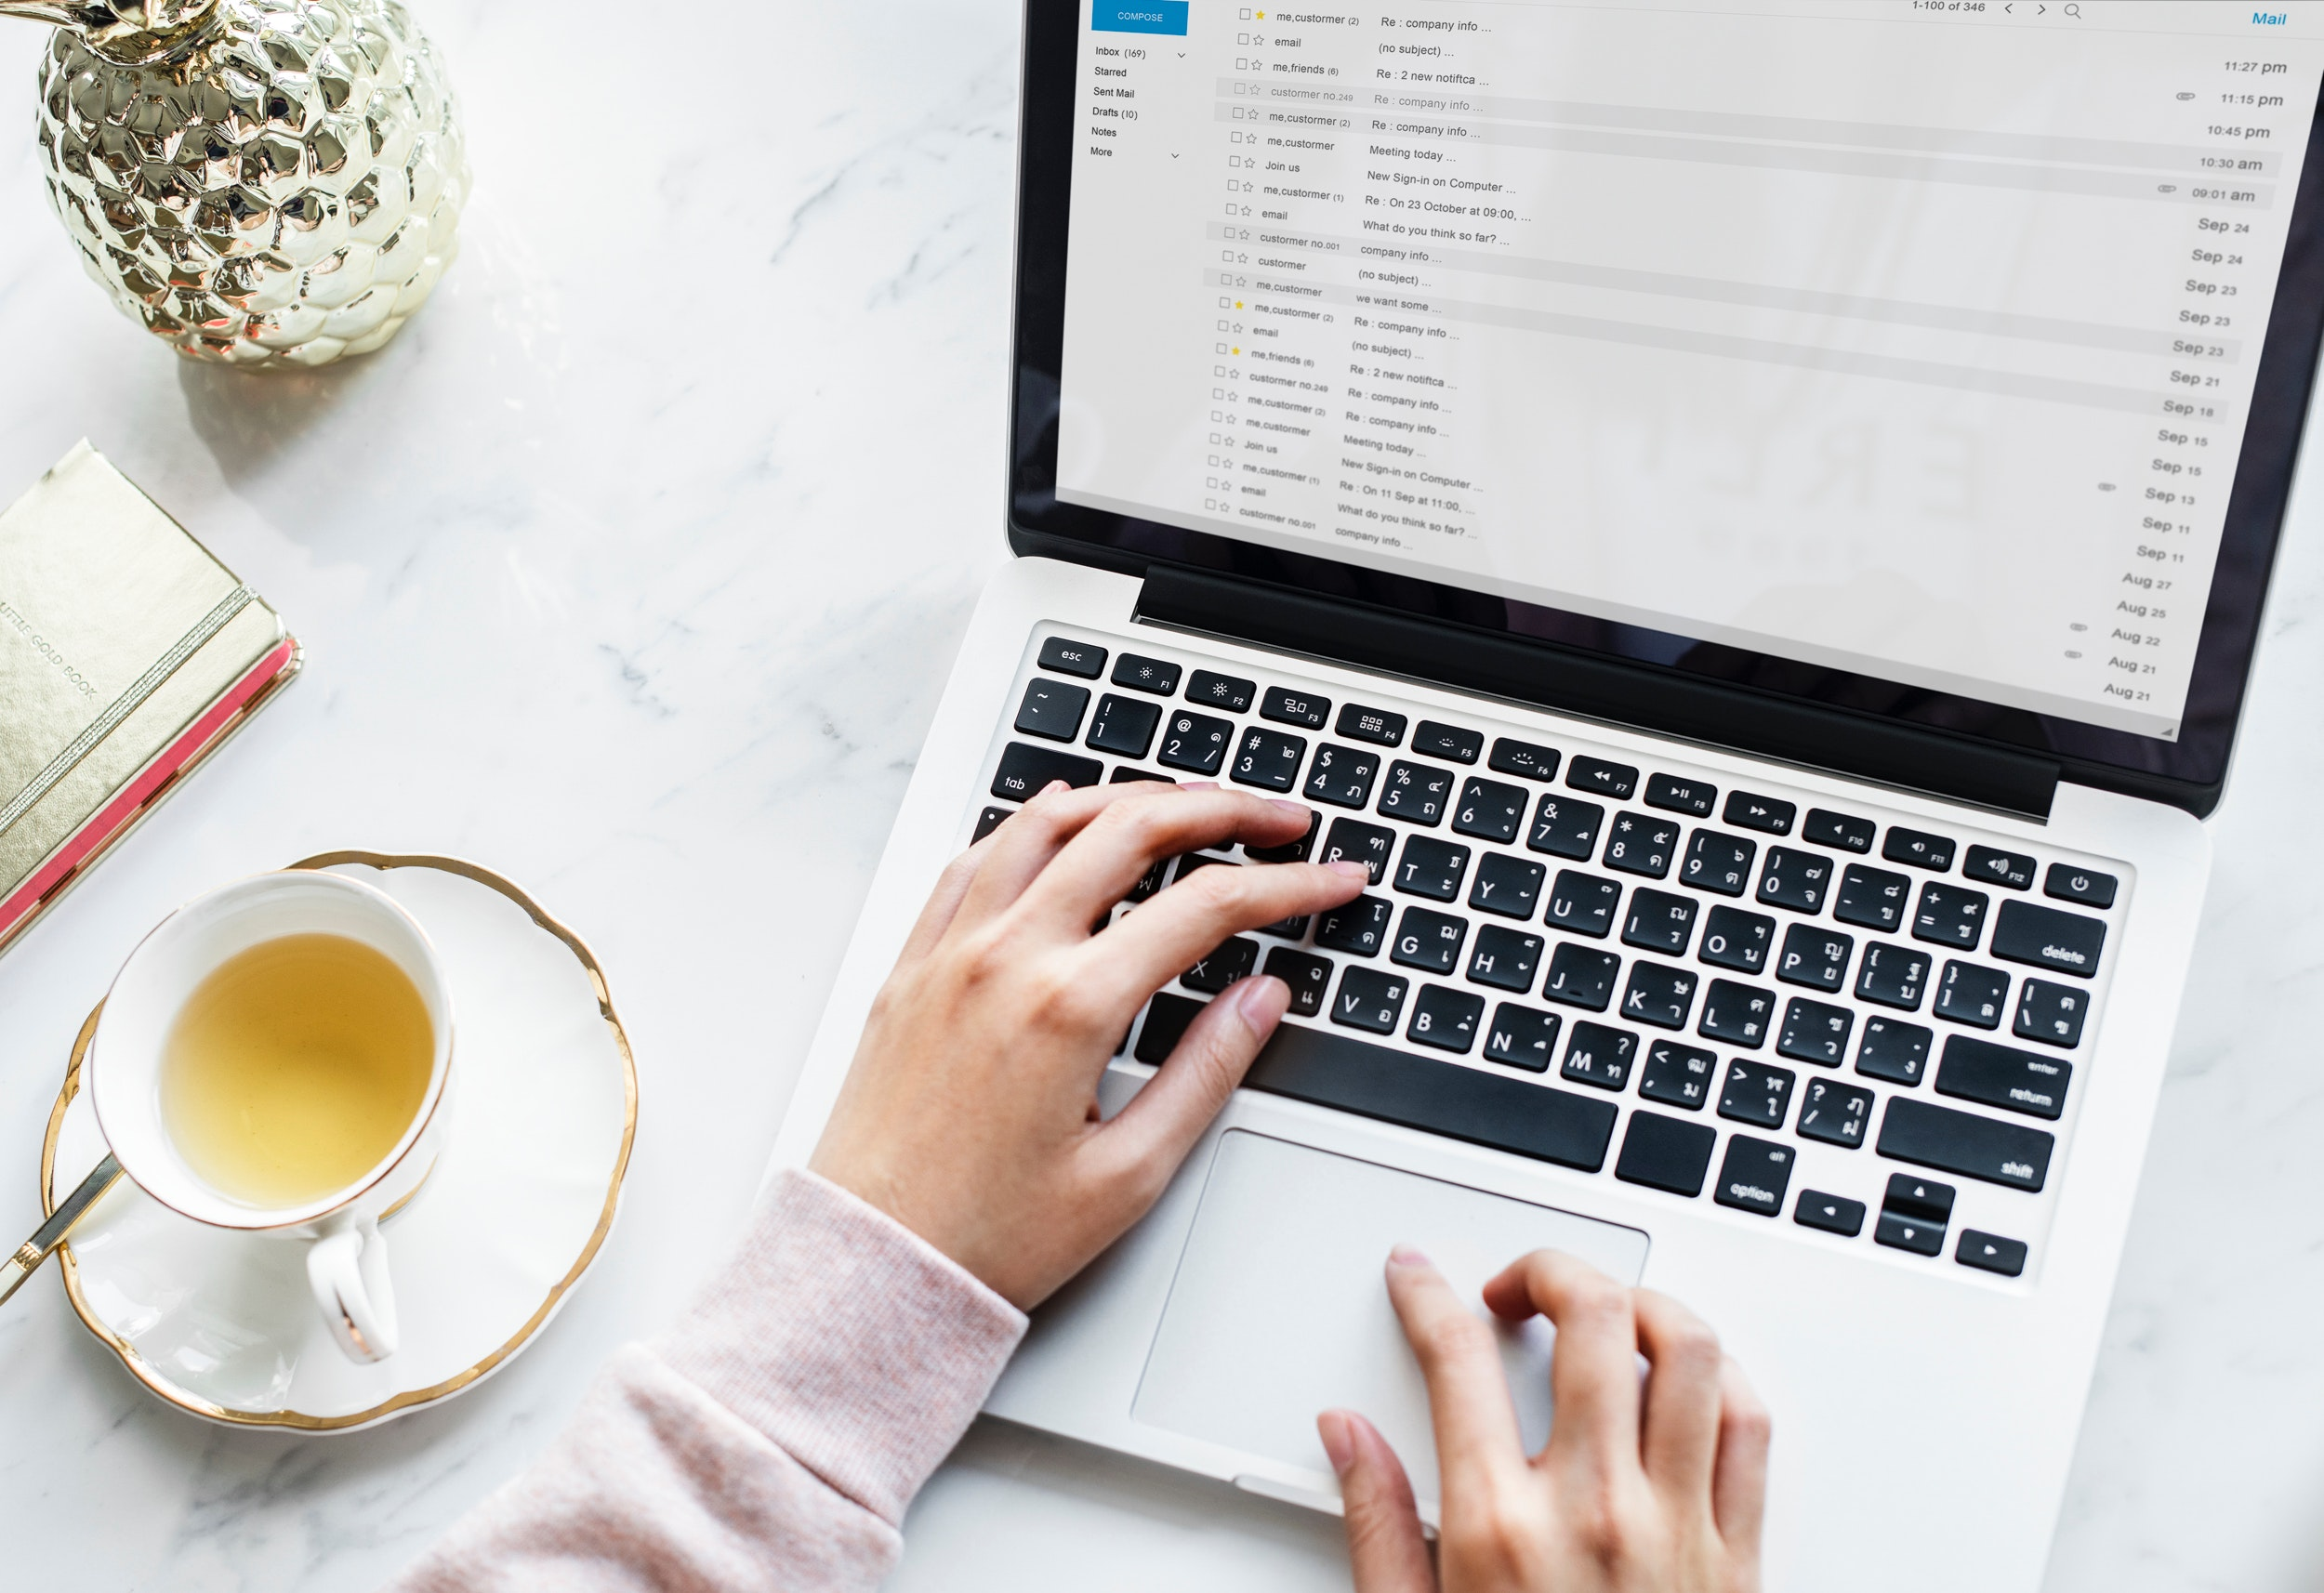 40+ Powerful Email Marketing Statistics You Should Know in 2019